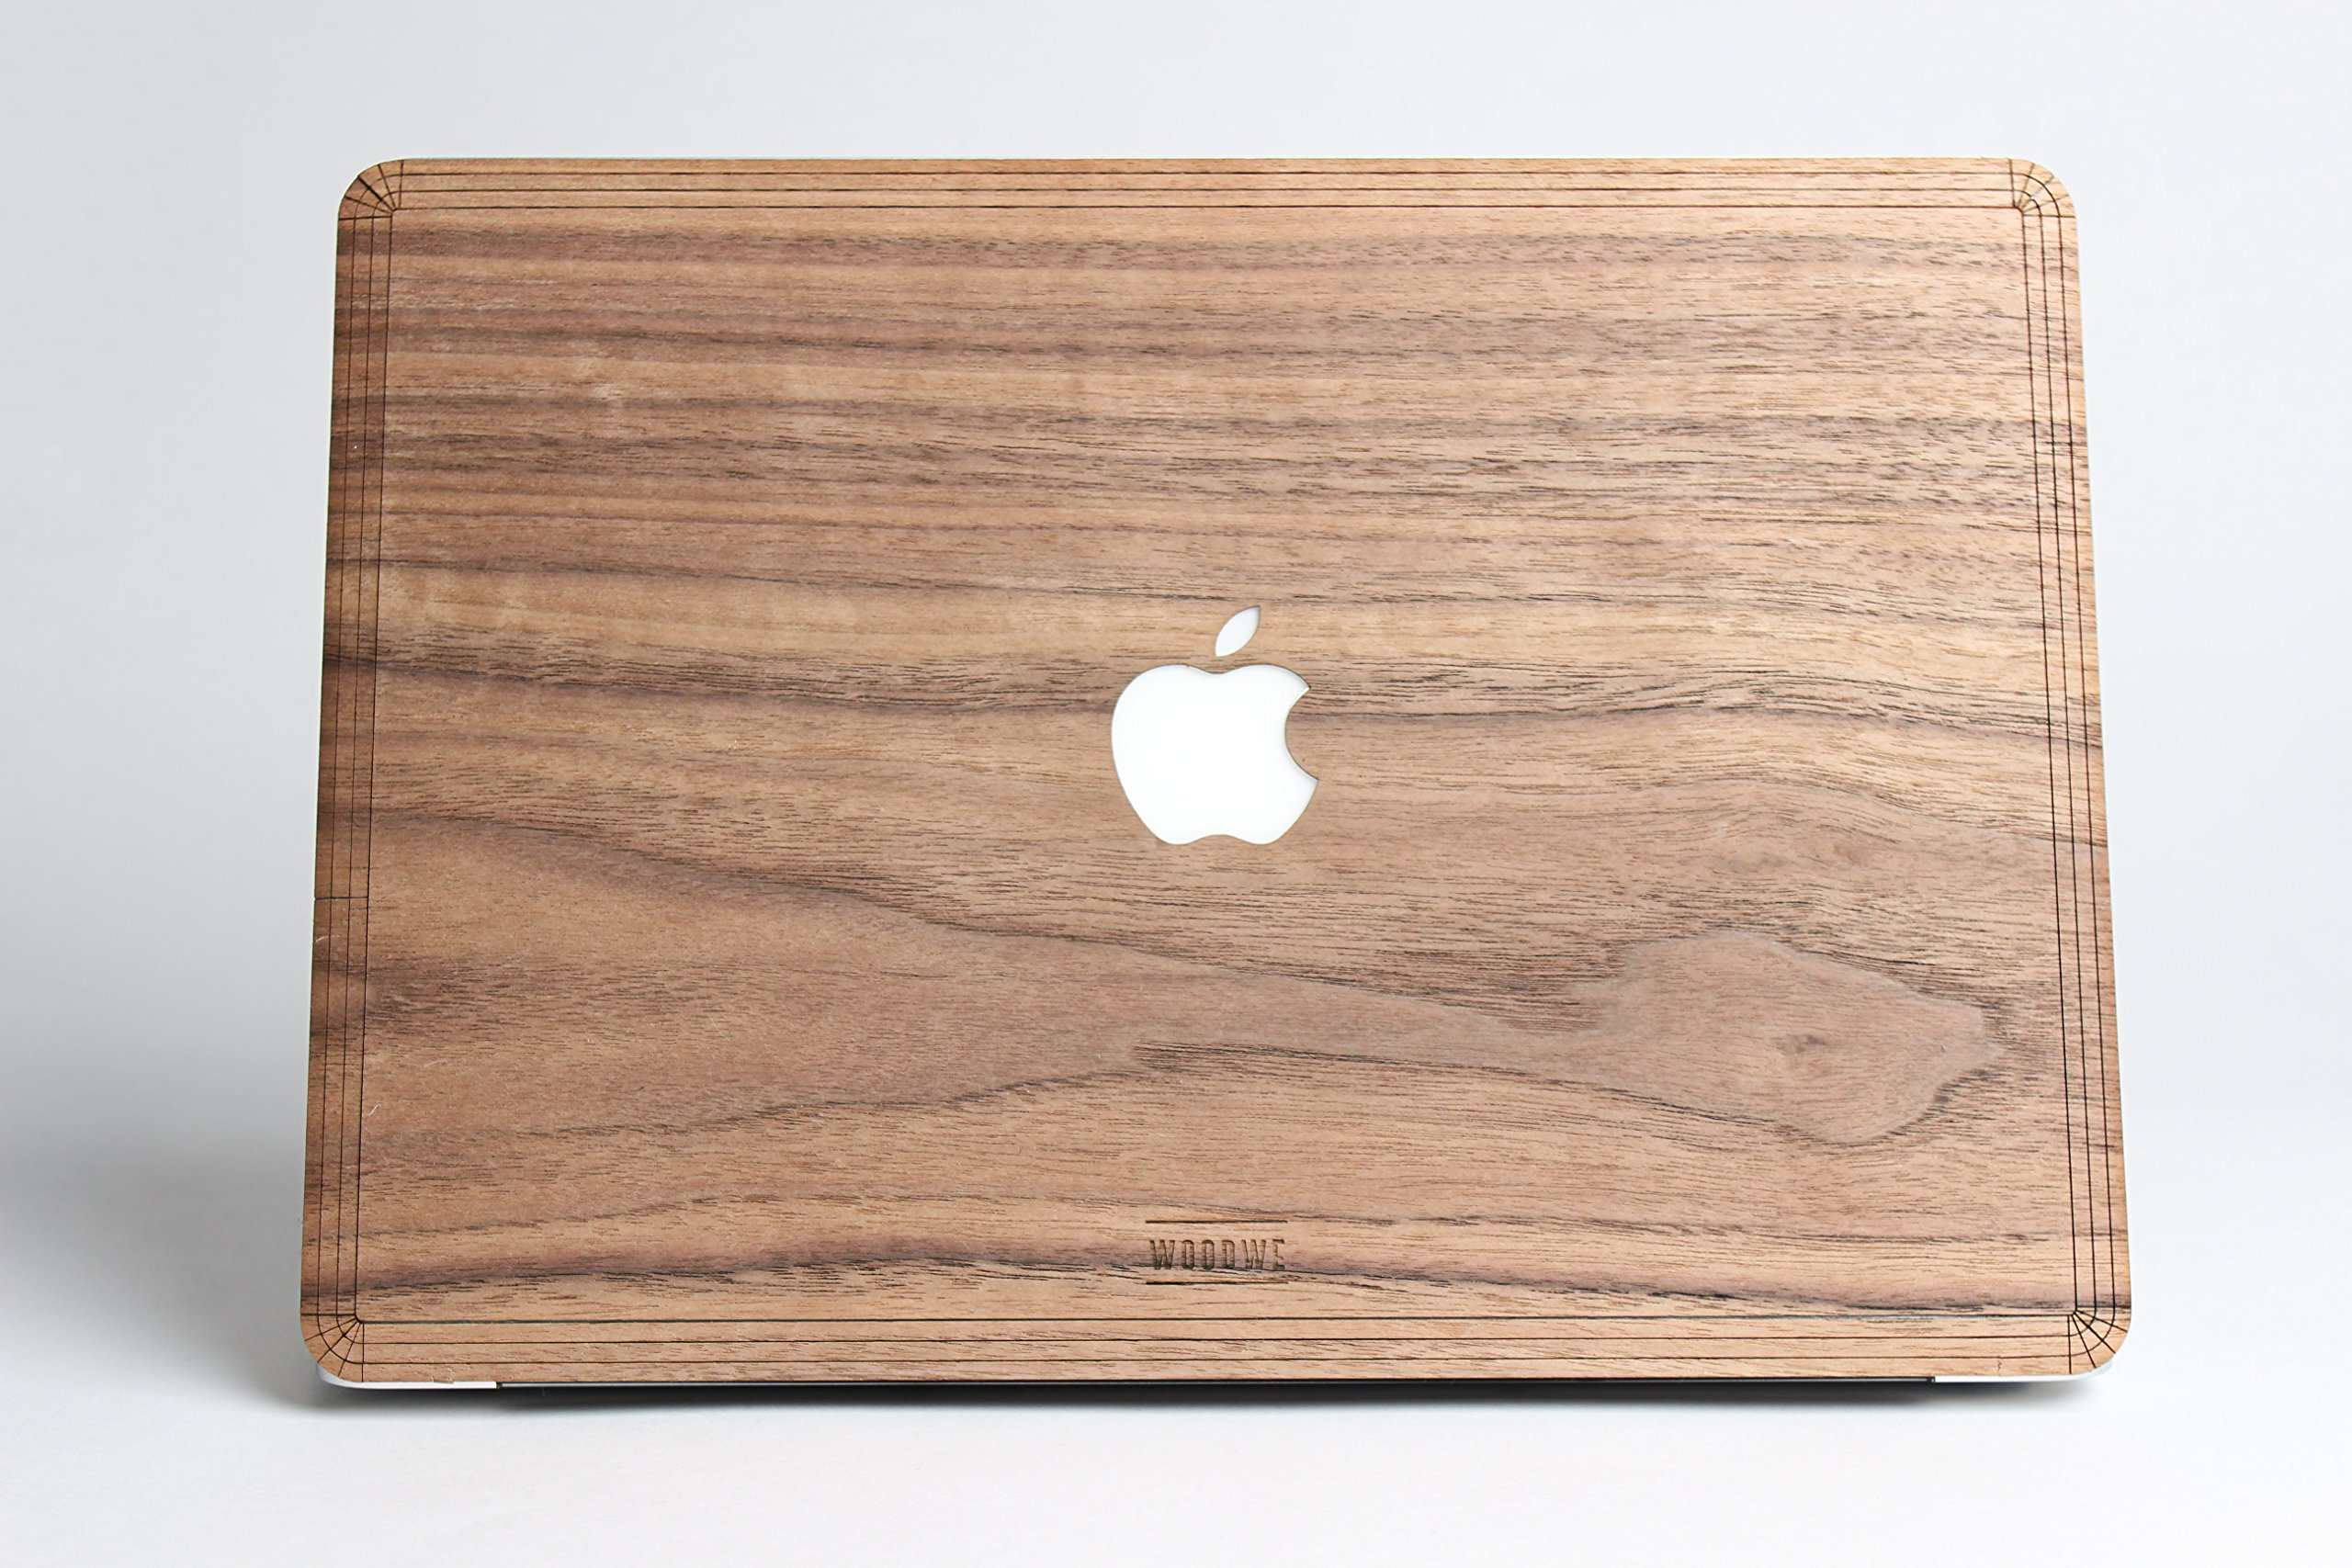 WOODWE Real Wood MacBook Skin Sticker Decal for Mac Pro 13 inch with/Without Touch Bar   Model: A1706/A1708/A1989; Late 2016 – Mid 2017   Natural Walnut Wood   TOP&Bottom Cover